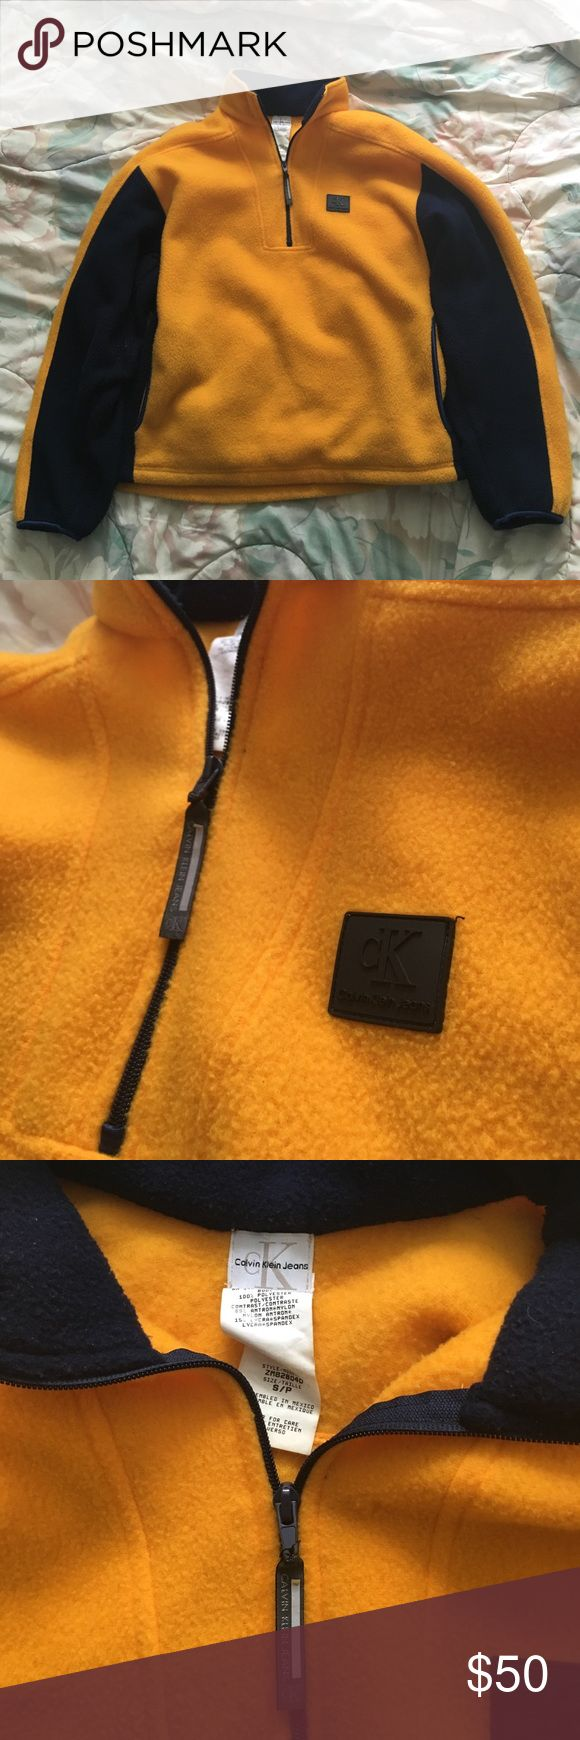 Calvin Klein Jeans pullover fleece vivid blue and yellow Calvin Klein pullover fleece will definitely have the honeys cozying up on you this season :-) only slight wear and tear is on zipper tag (pictured above) Calvin Klein Jeans Sweaters